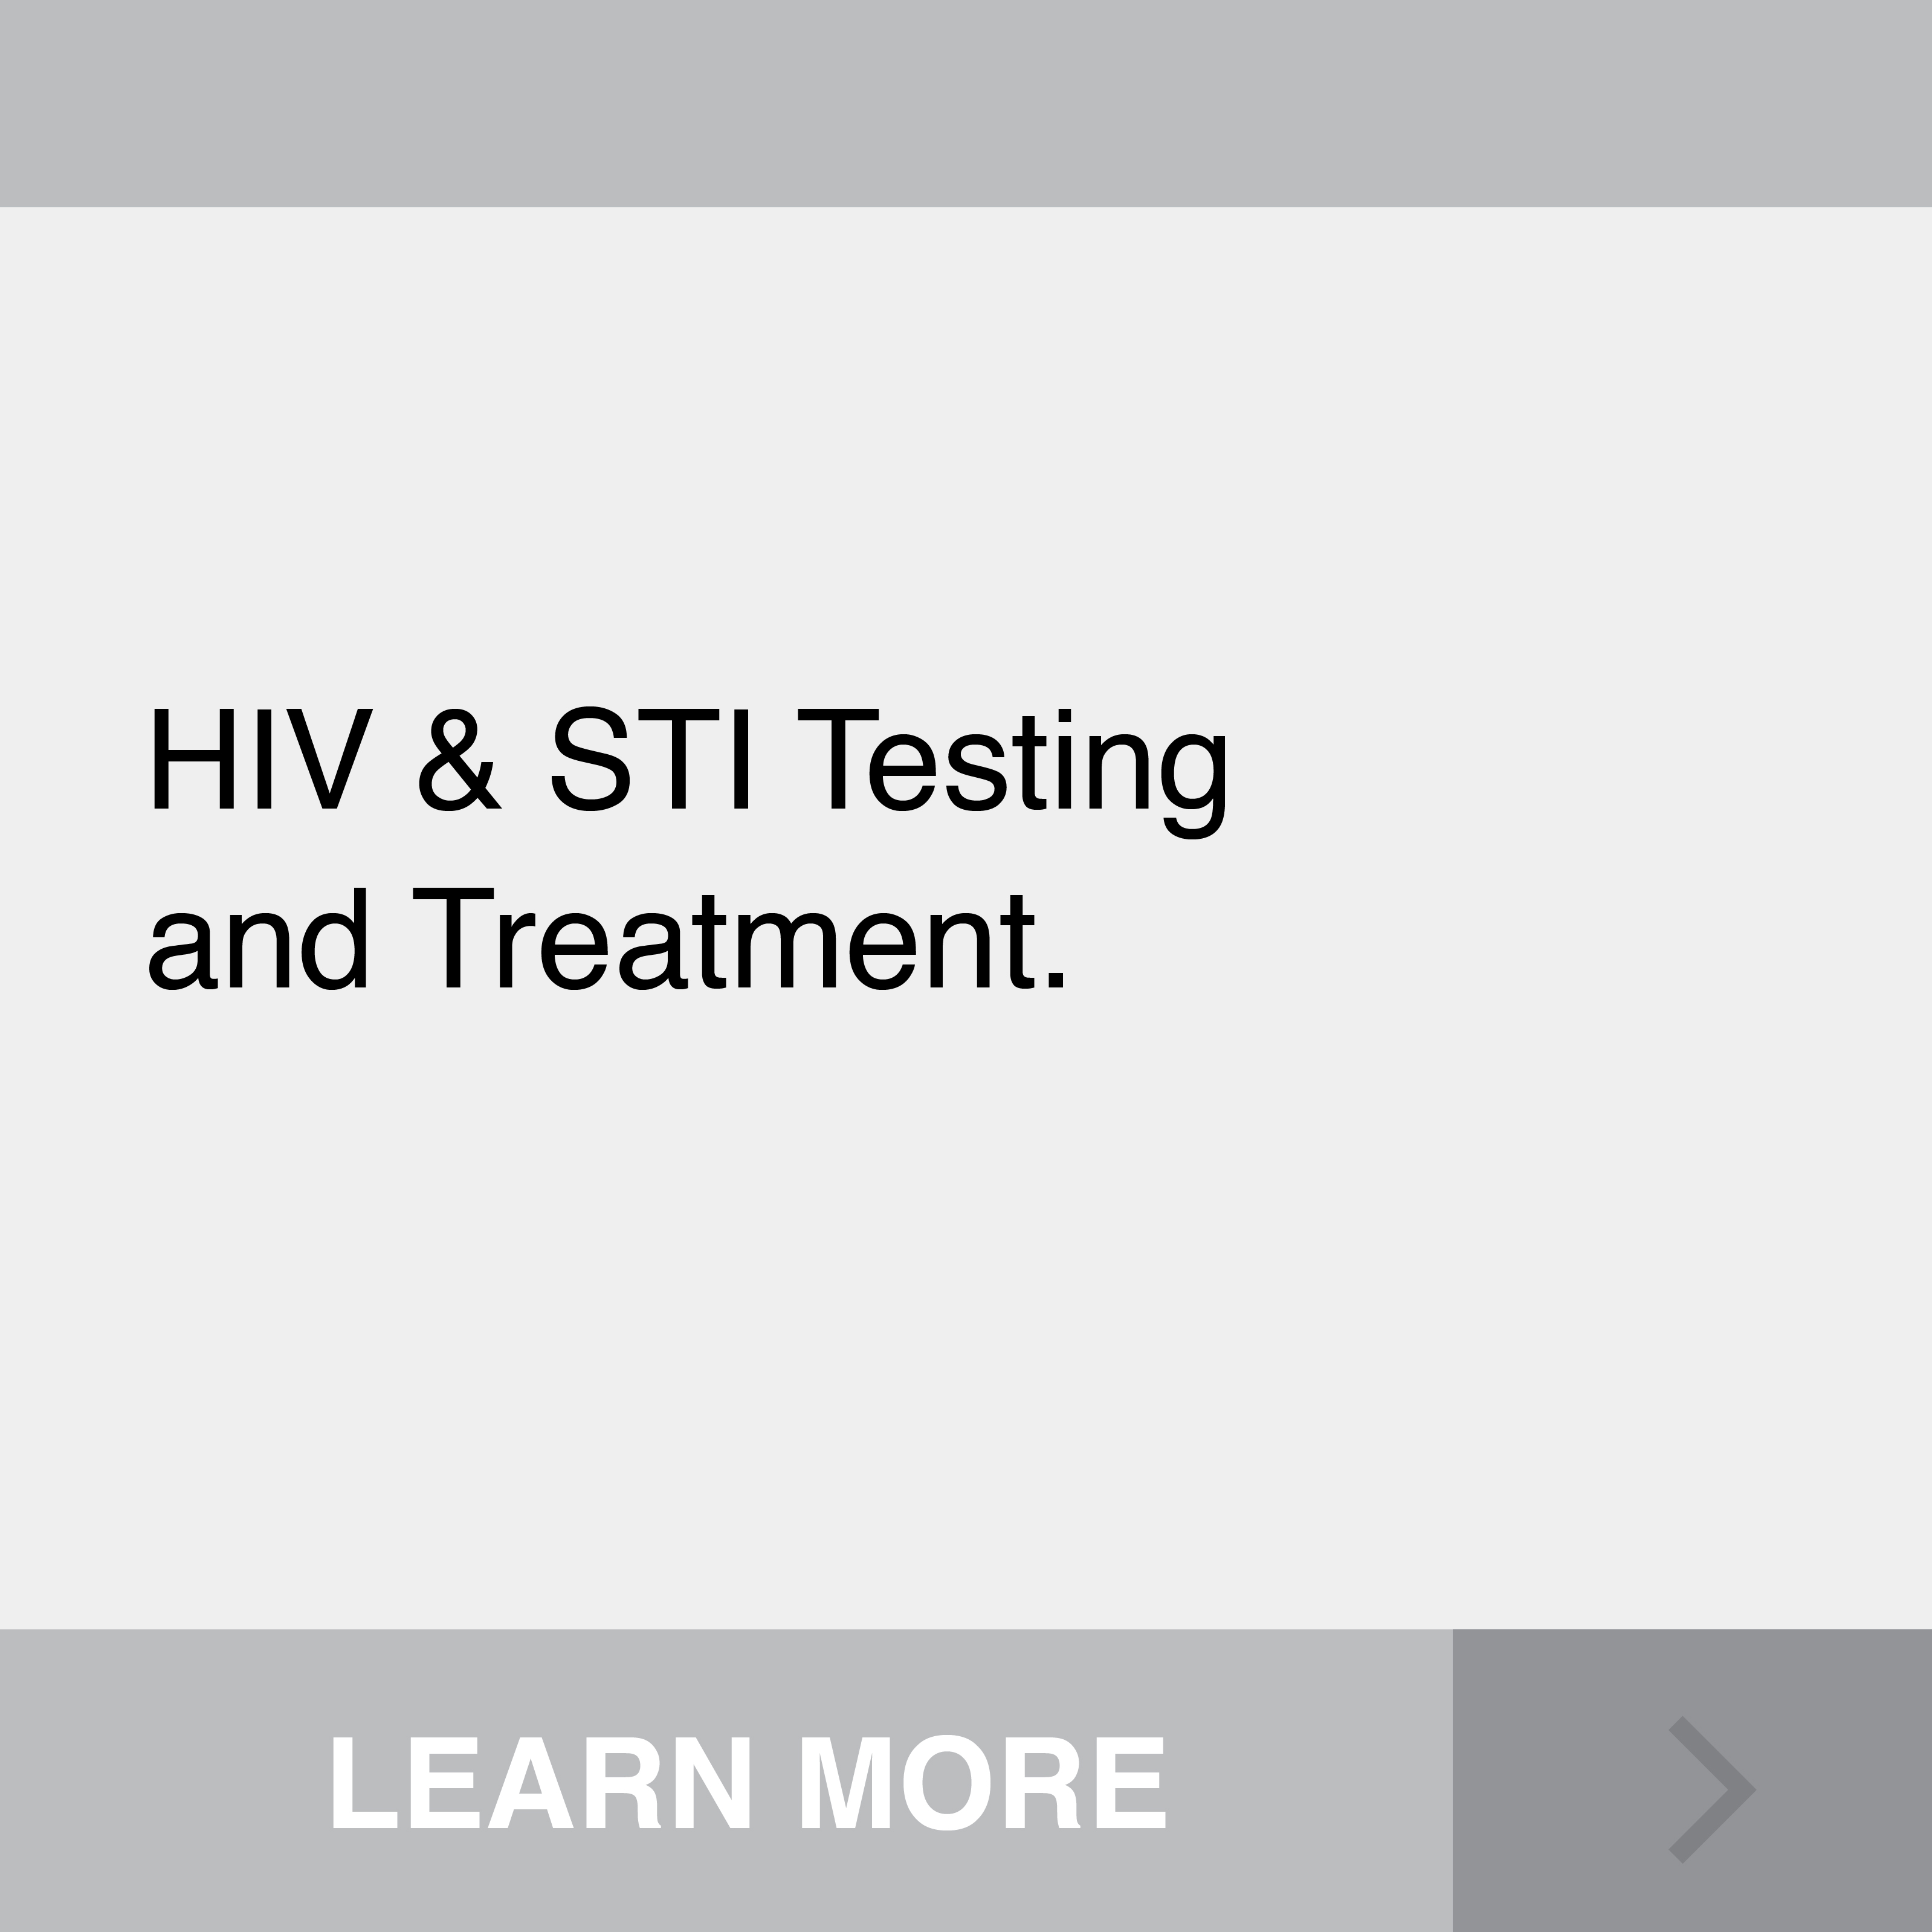 HIV & STI Testing and Treatment. Click to Learn More.